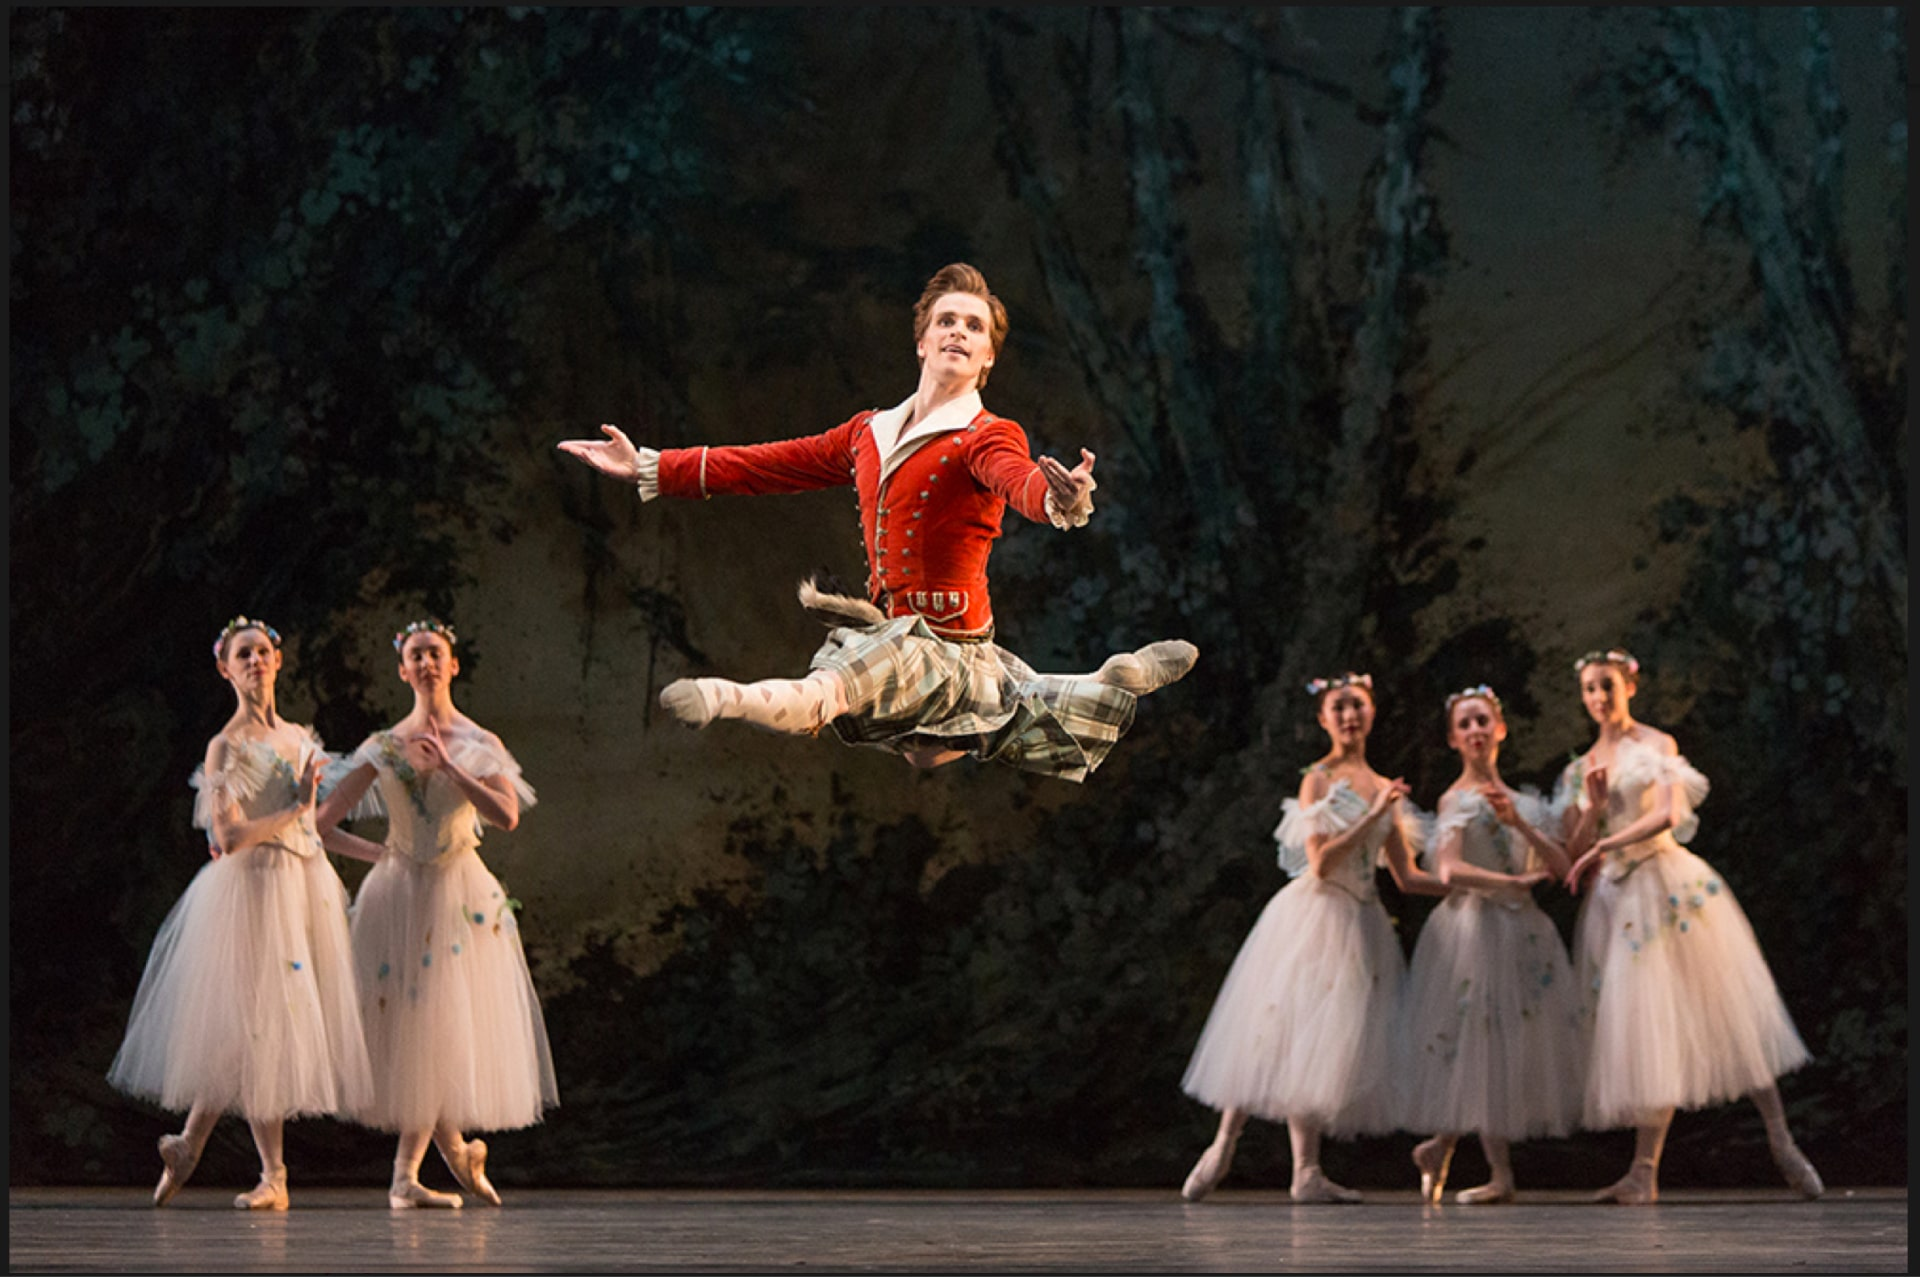 Dancer in kilt and red jacket leaps in front of chorus of ballerinas in white gauzy dresses, against painted trees backdrop.